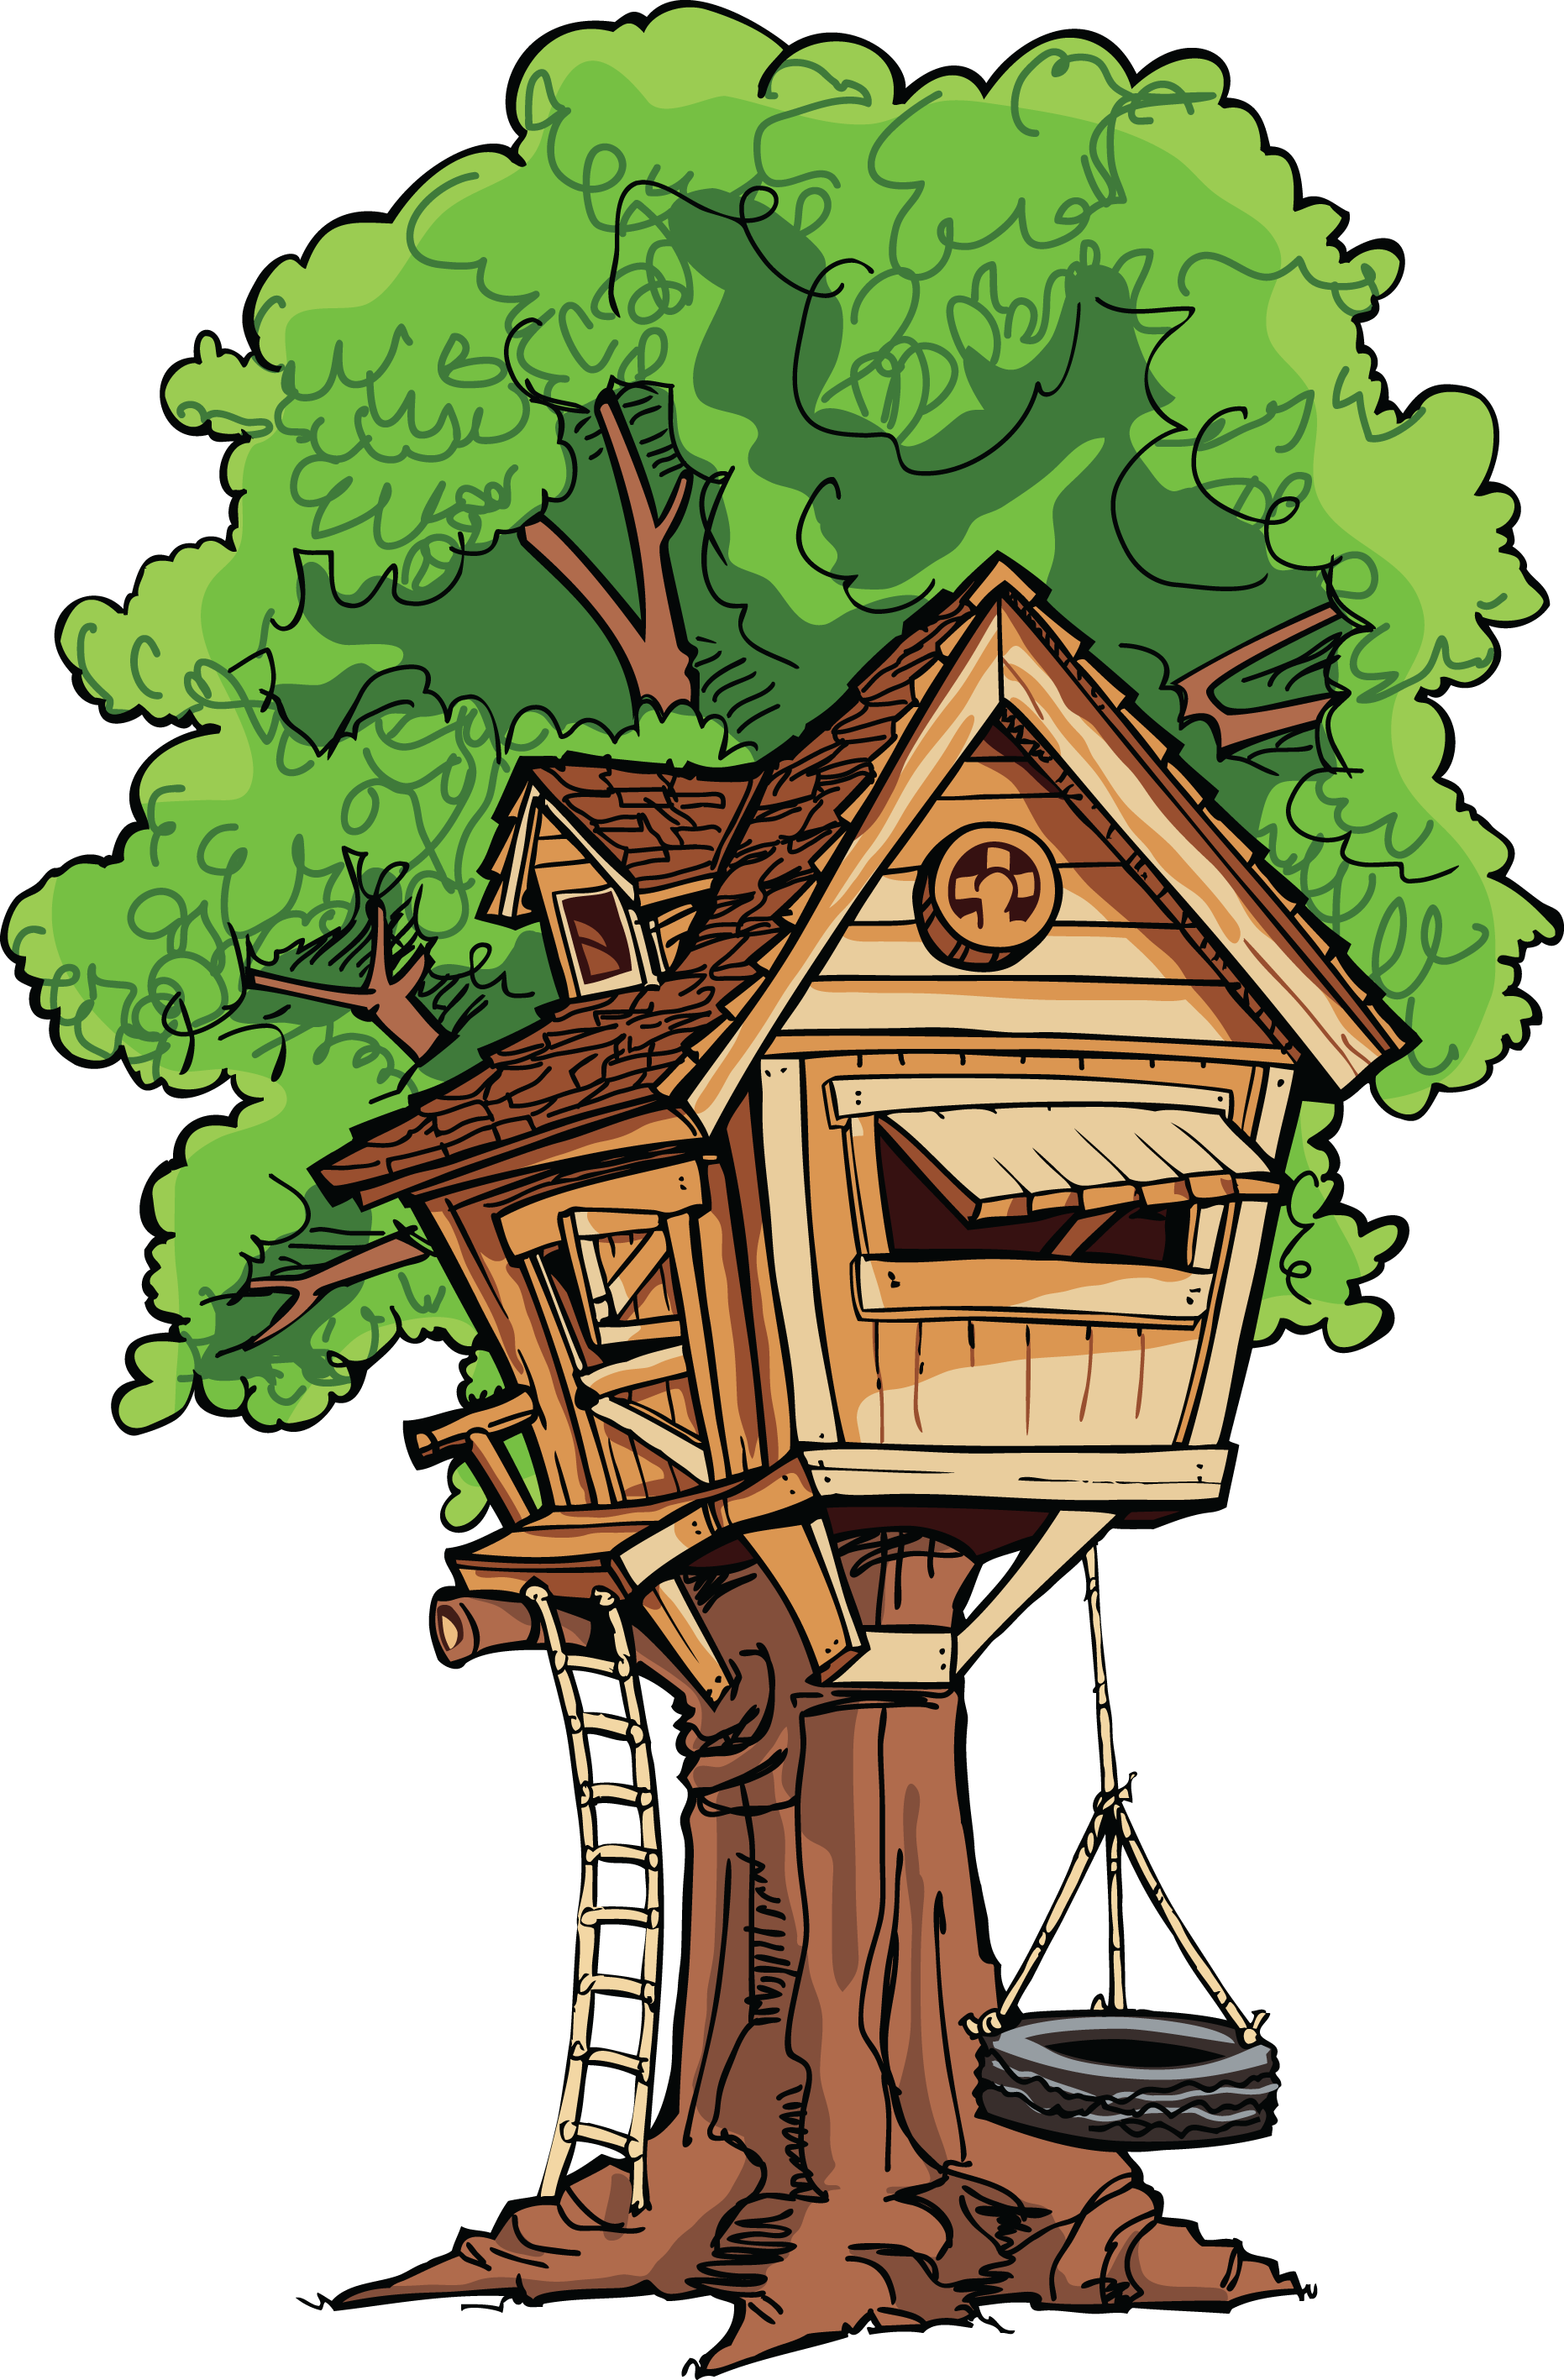 House project clipart jpg royalty free download Tree House Clip Art | When you go into the creative world you have ... jpg royalty free download